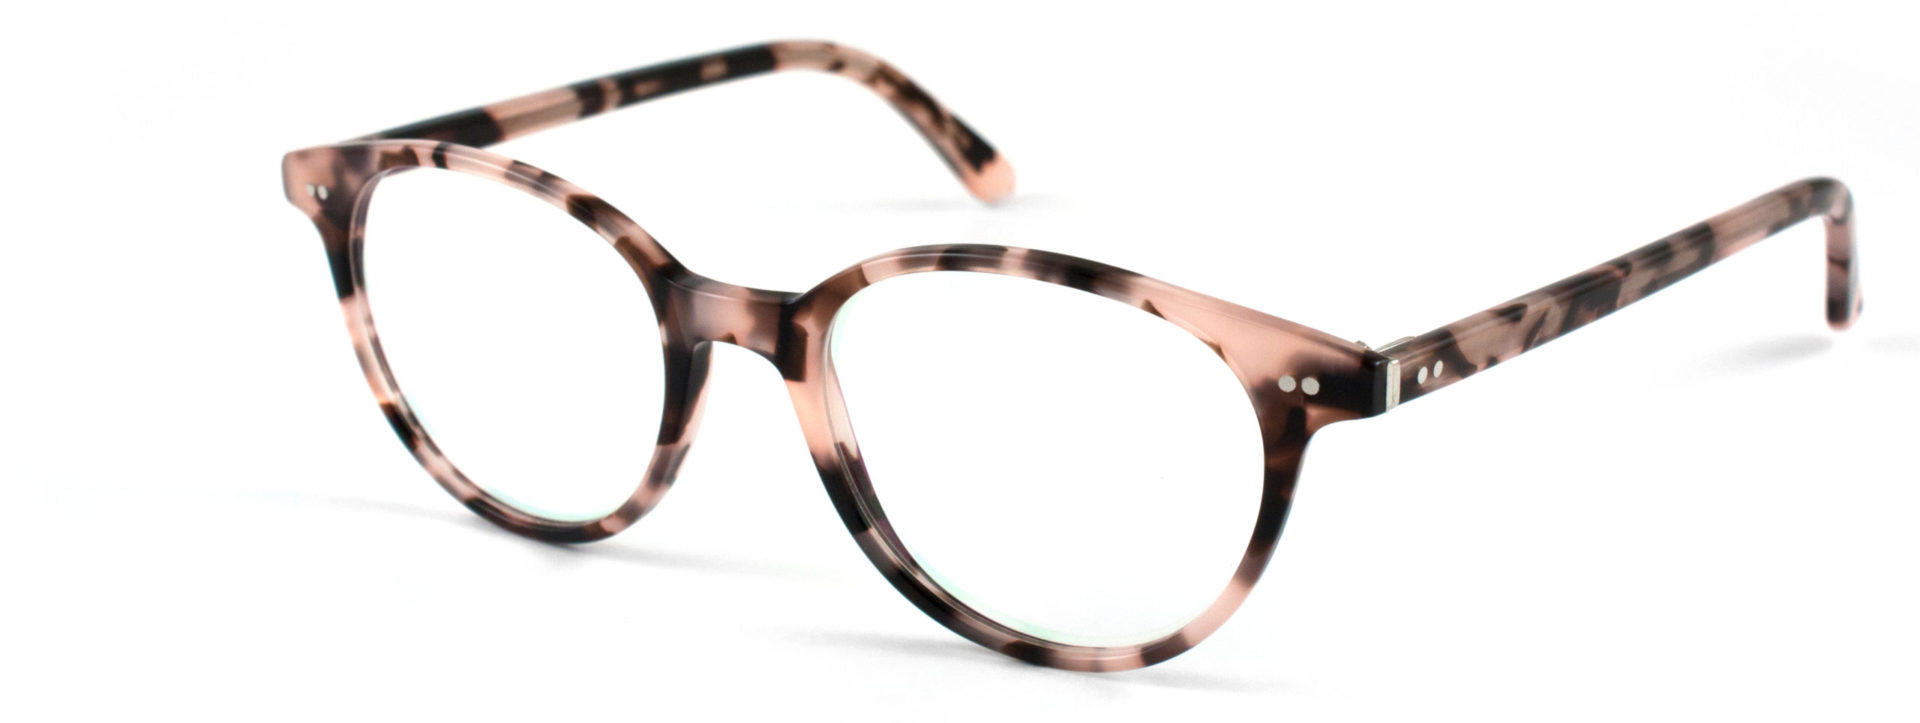 charles stone brille muenchen scaled - Charles Stone